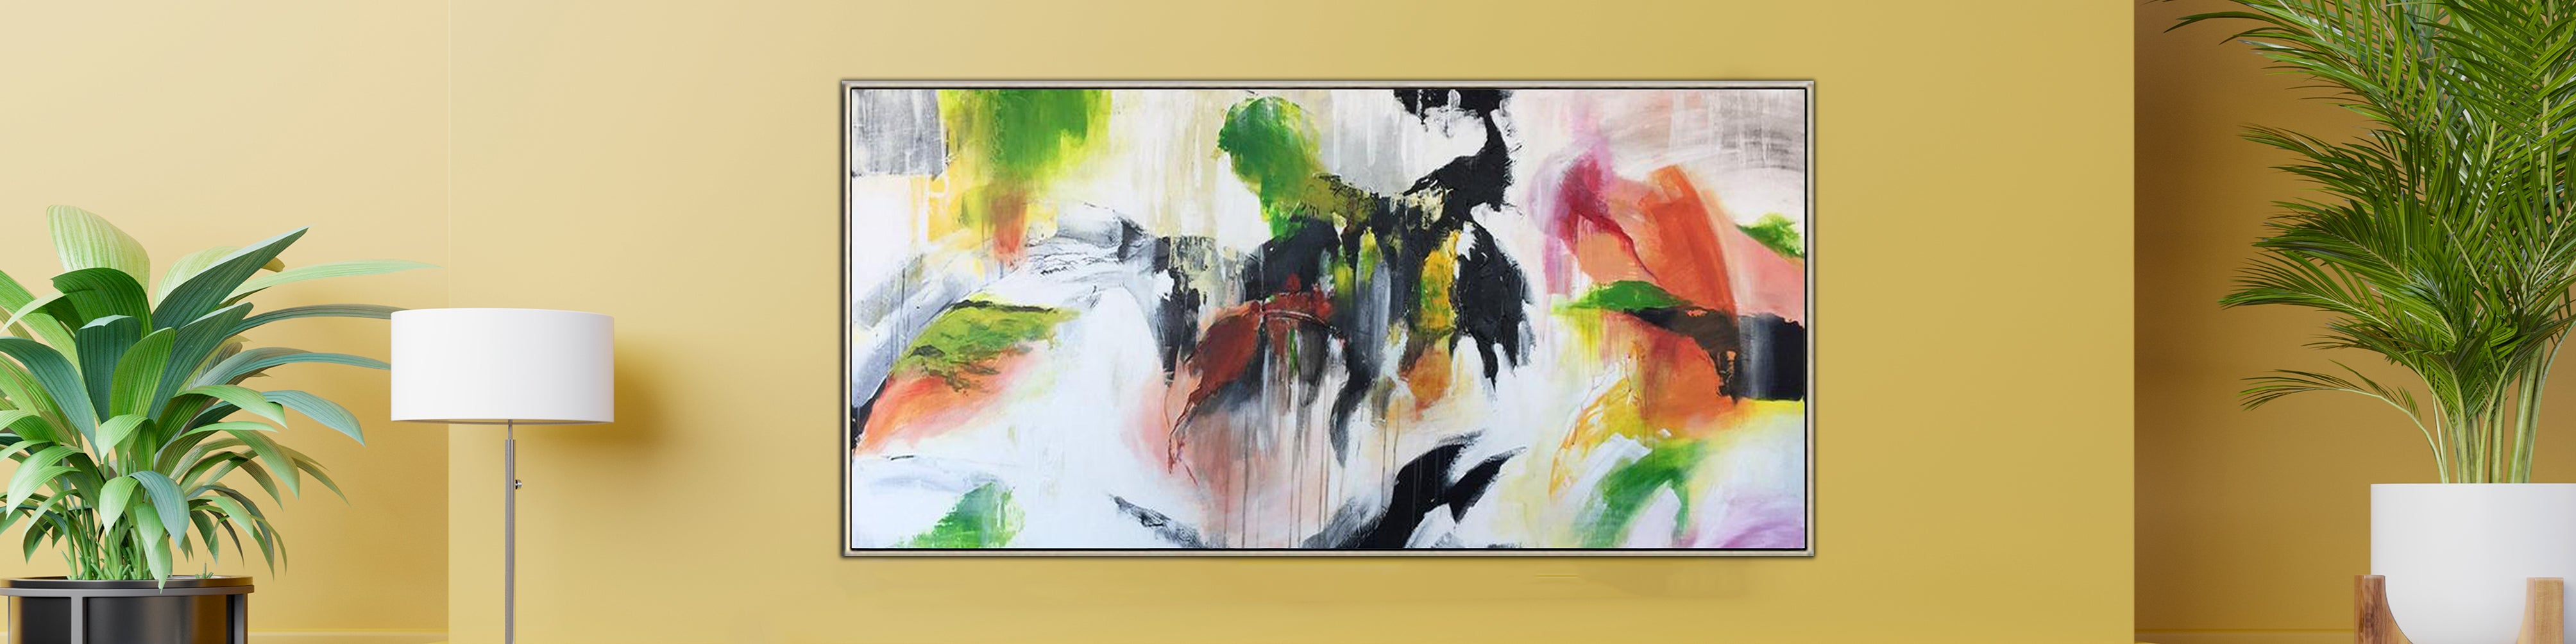 Breathtaking techniques on how to decorate a living room with acrylic on canvas